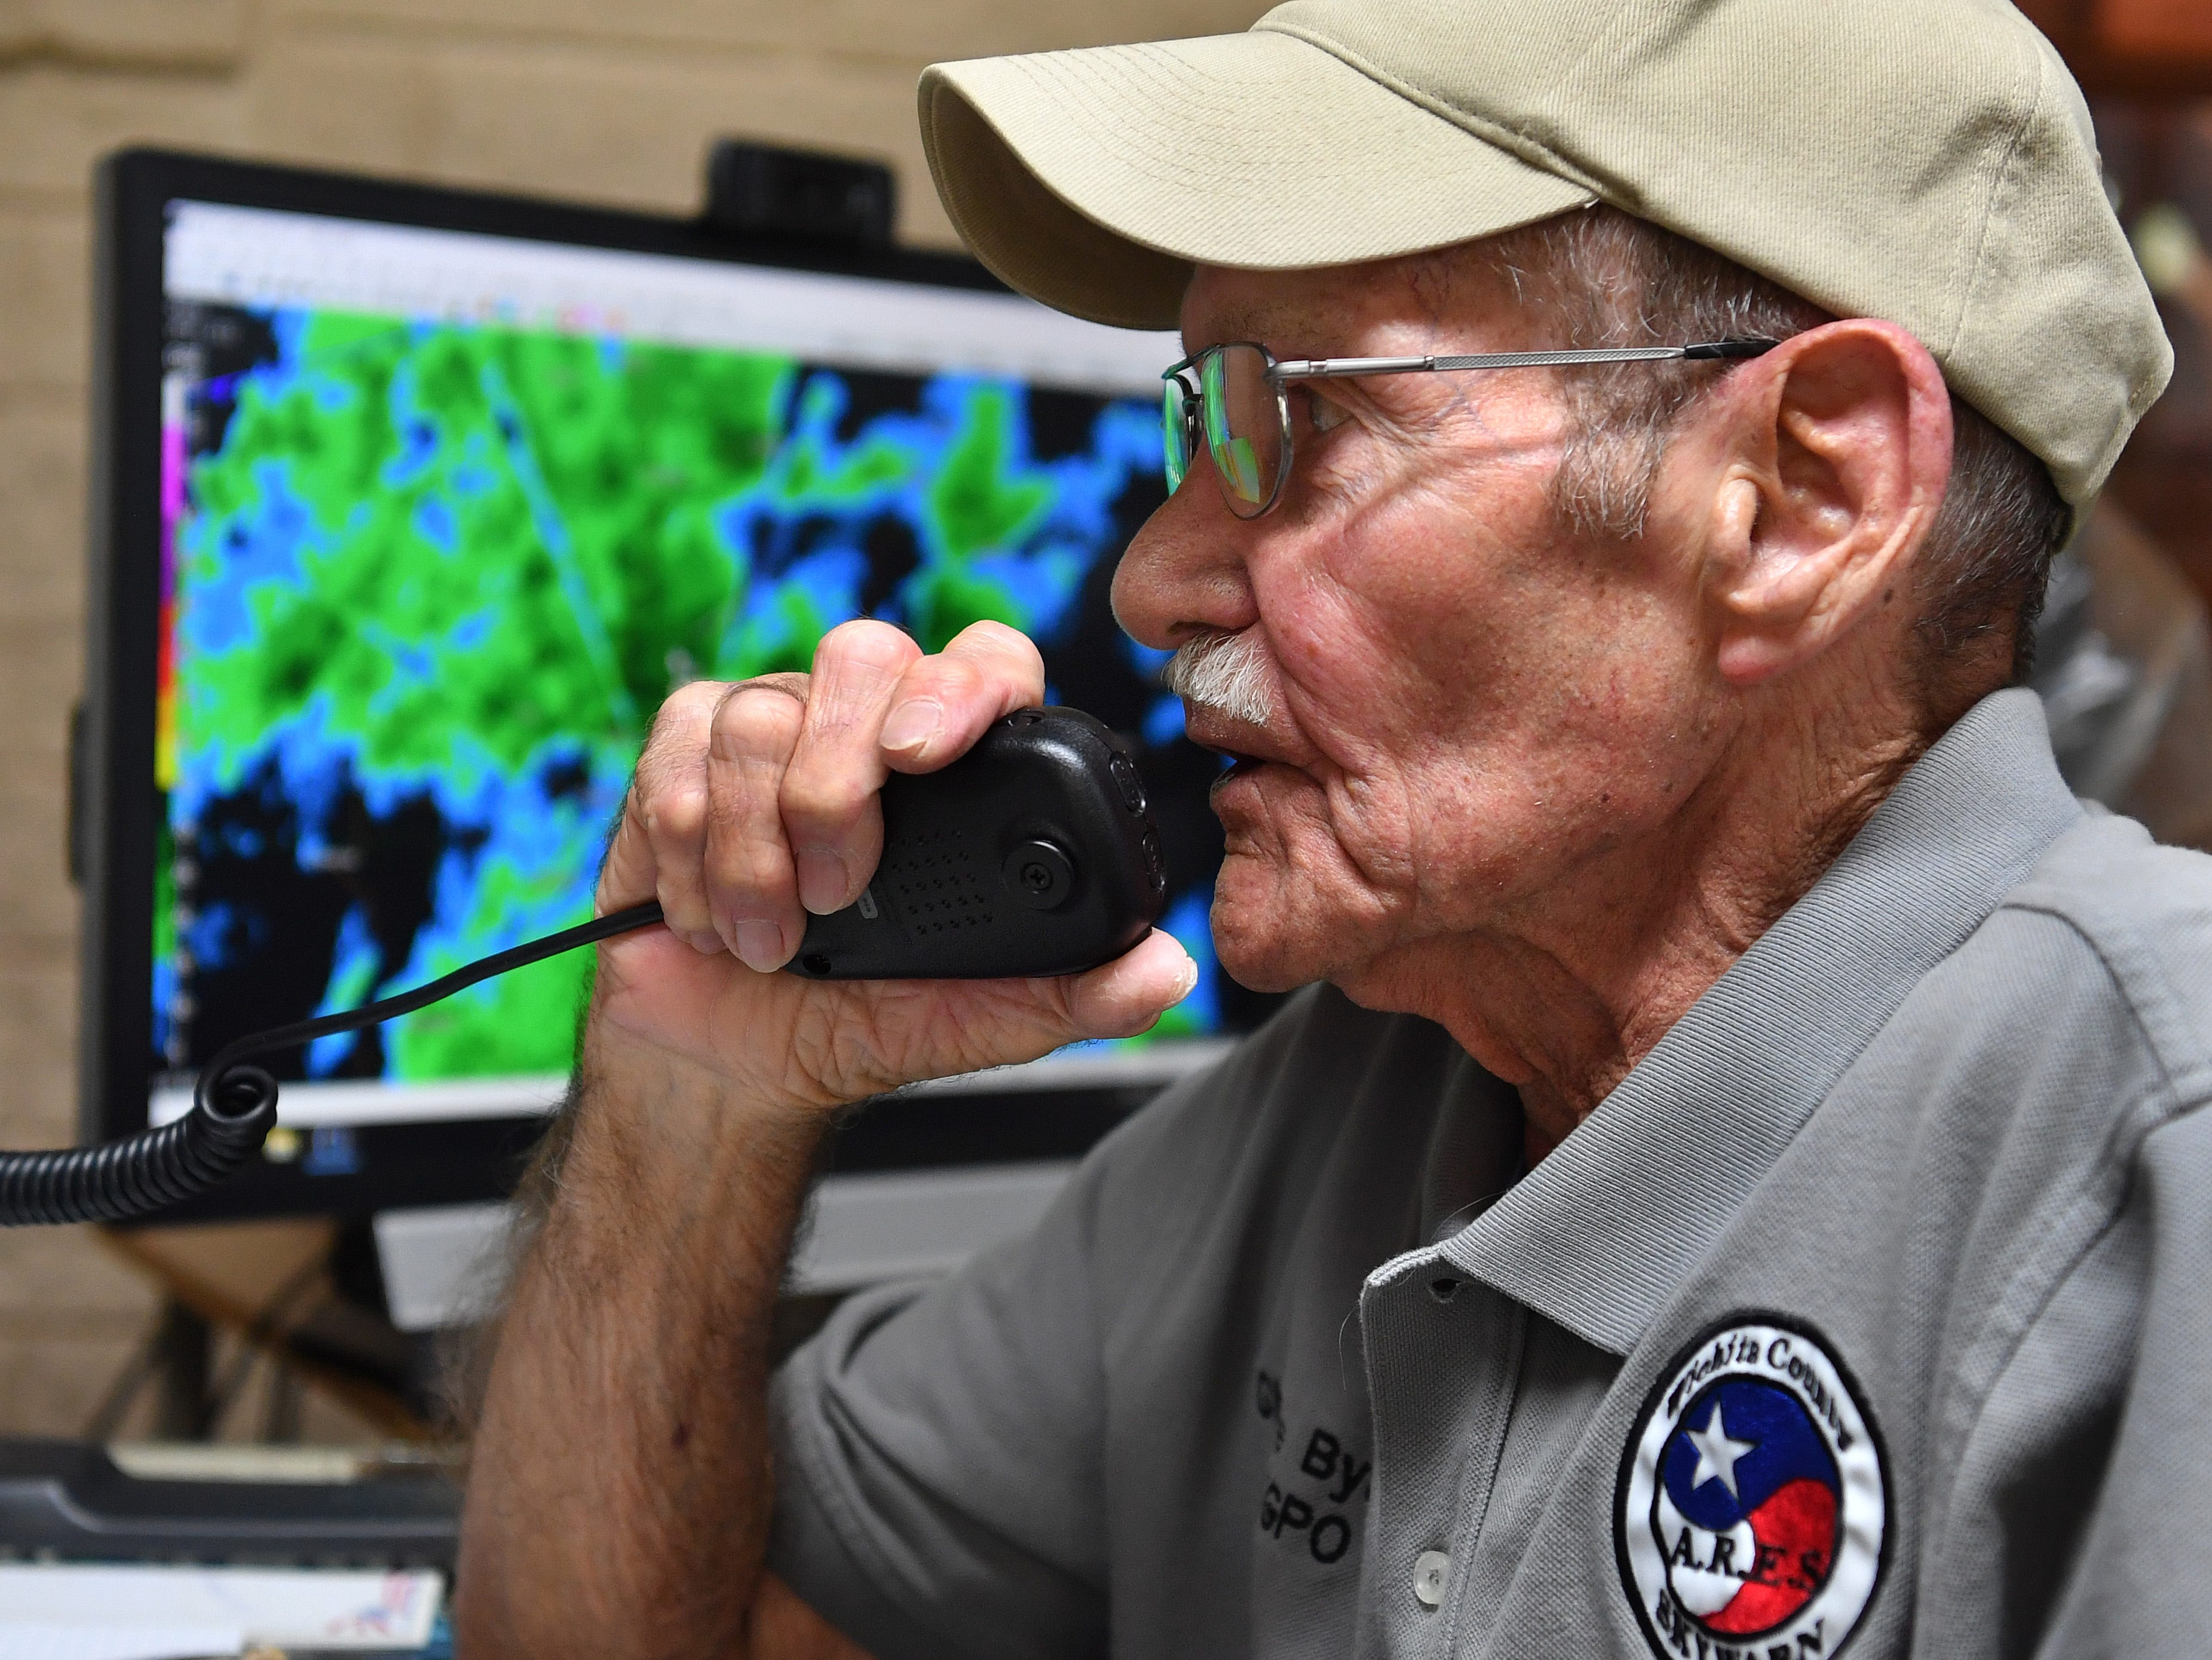 Charlie Byars has been honing his skills as a weather spotter and licensed ham radio operator since the late 1950s. He is the official coordinator for the network of severe weather spotters in the area.